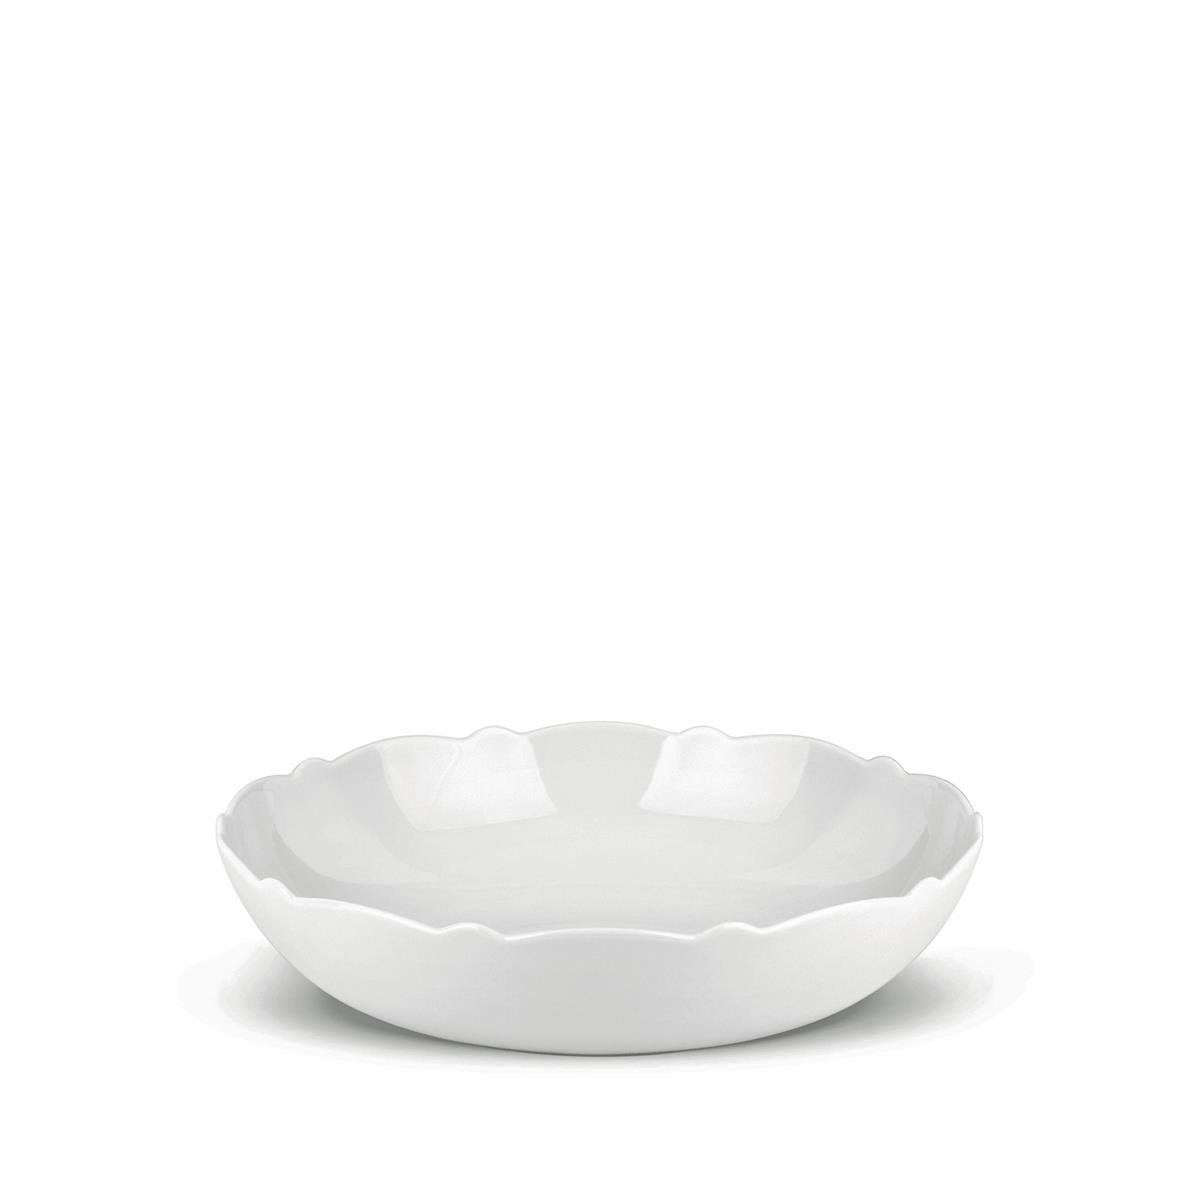 Alessi-Dressed Salad bowl in white porcelain with relief decoration